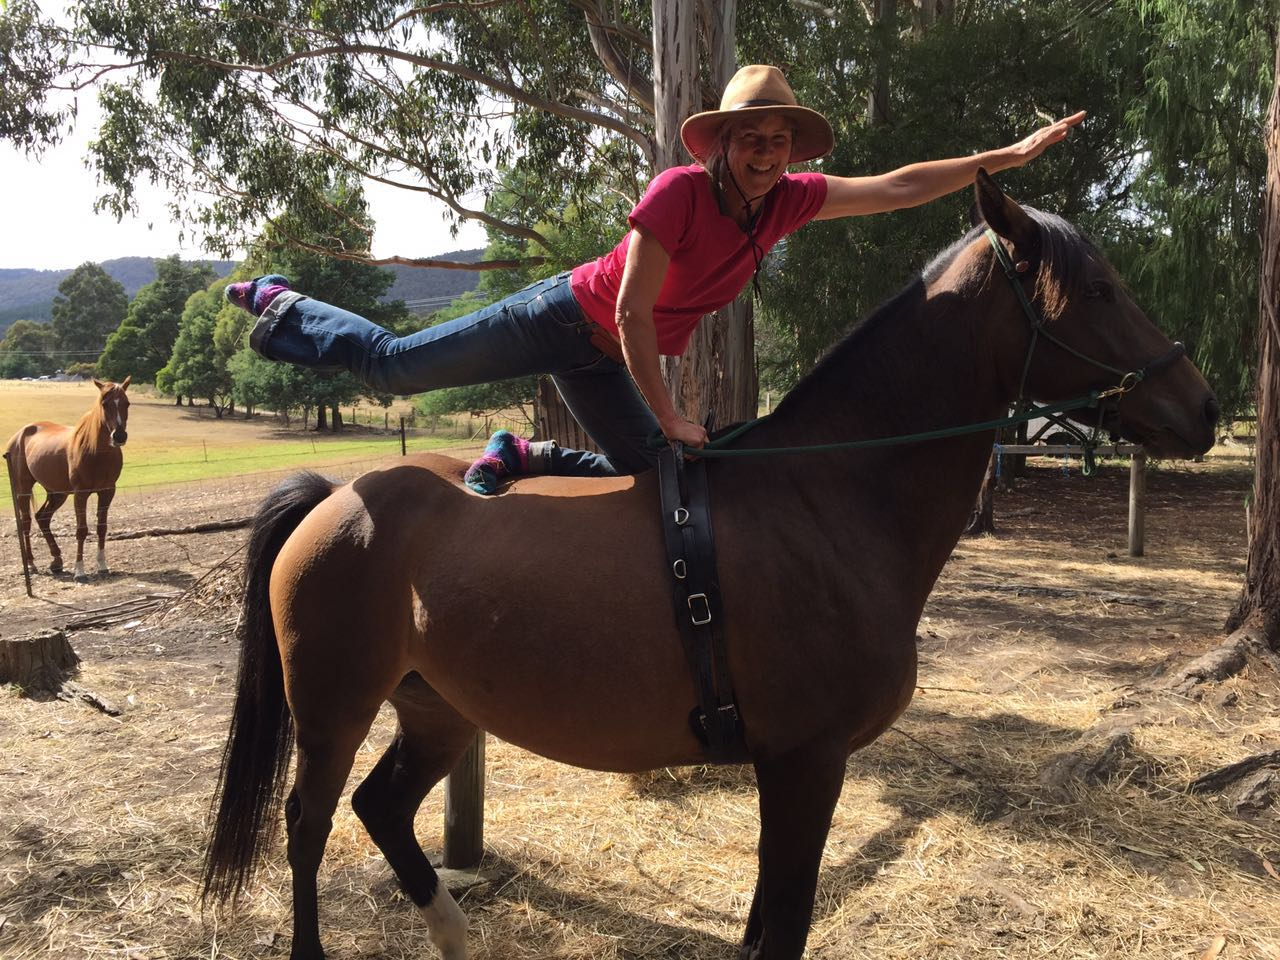 Conny Trying Some Yoga on a Horse